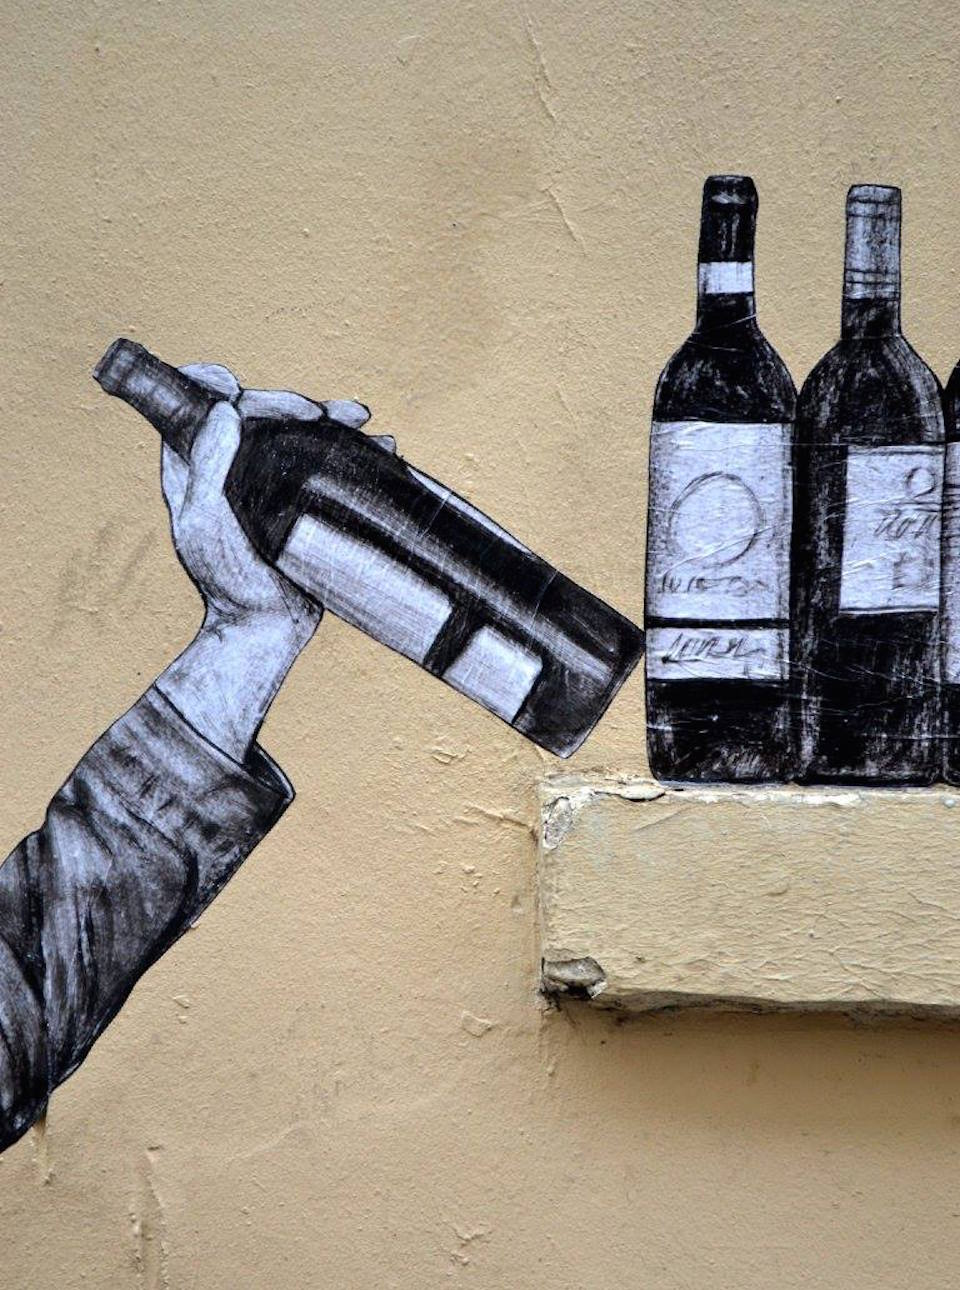 One too many - By Levalet in Paris, France 3